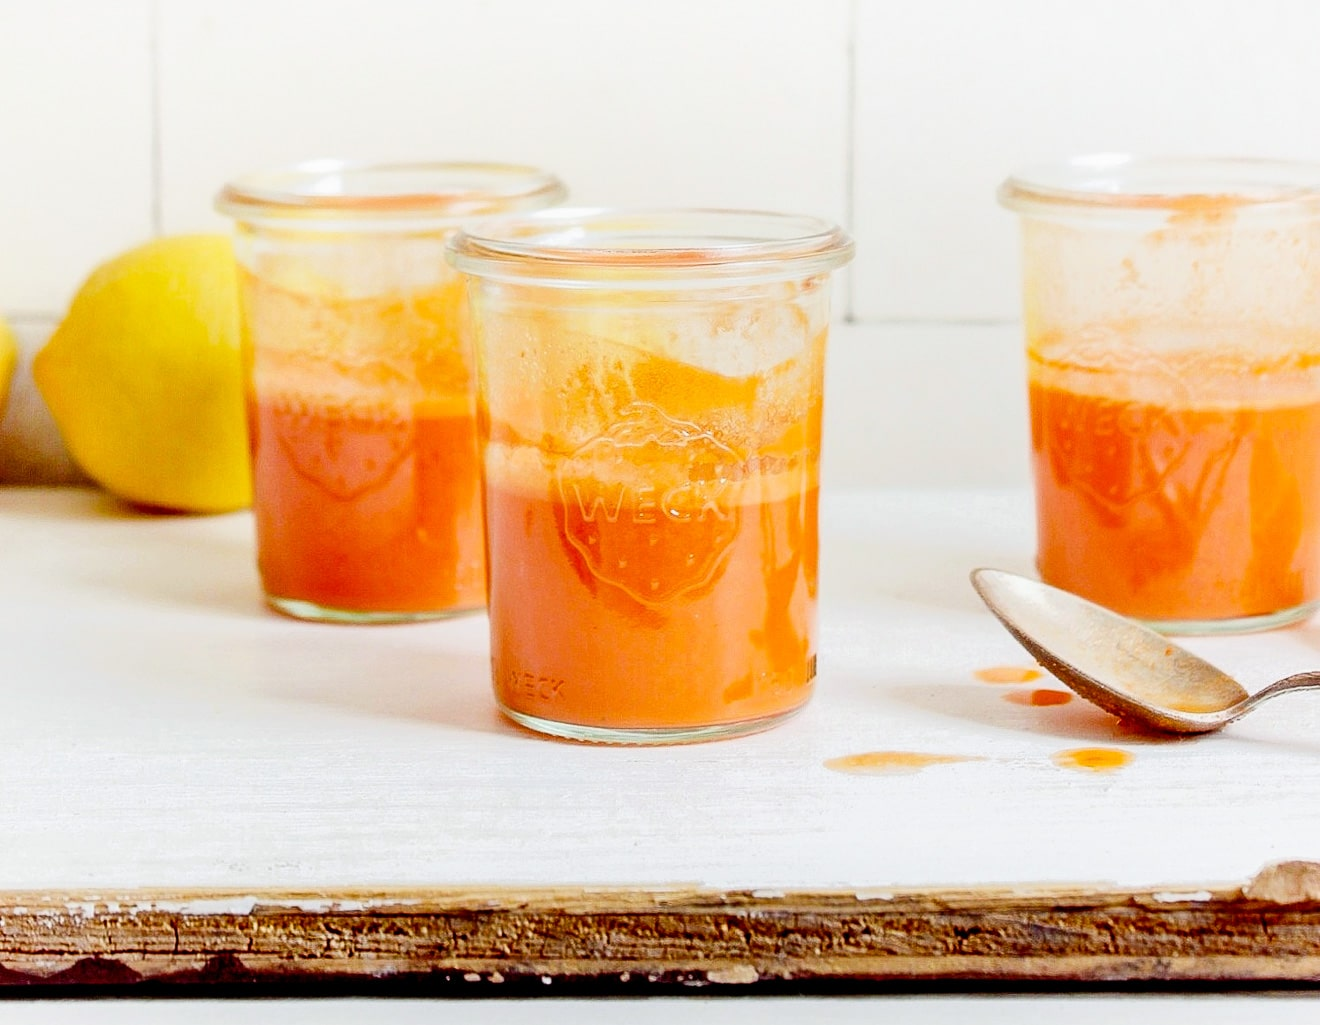 Immunity Juice Shots with carrot ginger lemon + garlic for flu season!